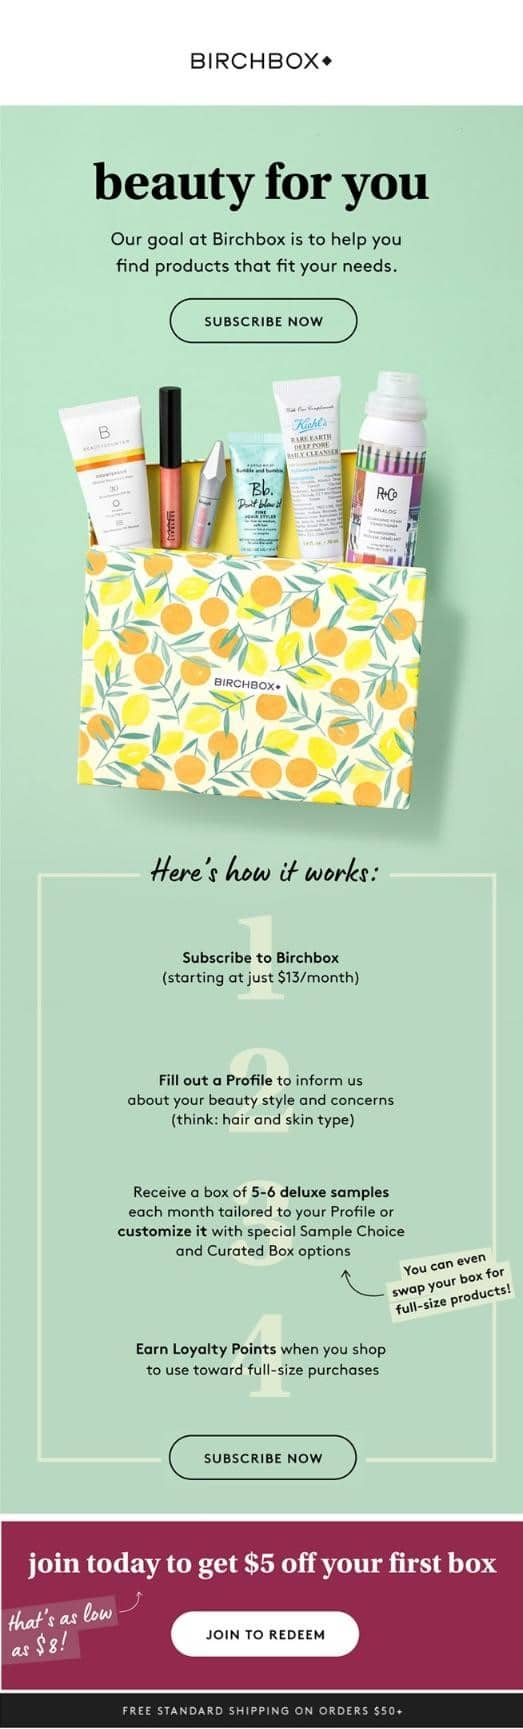 Welcome email series from Birchbox